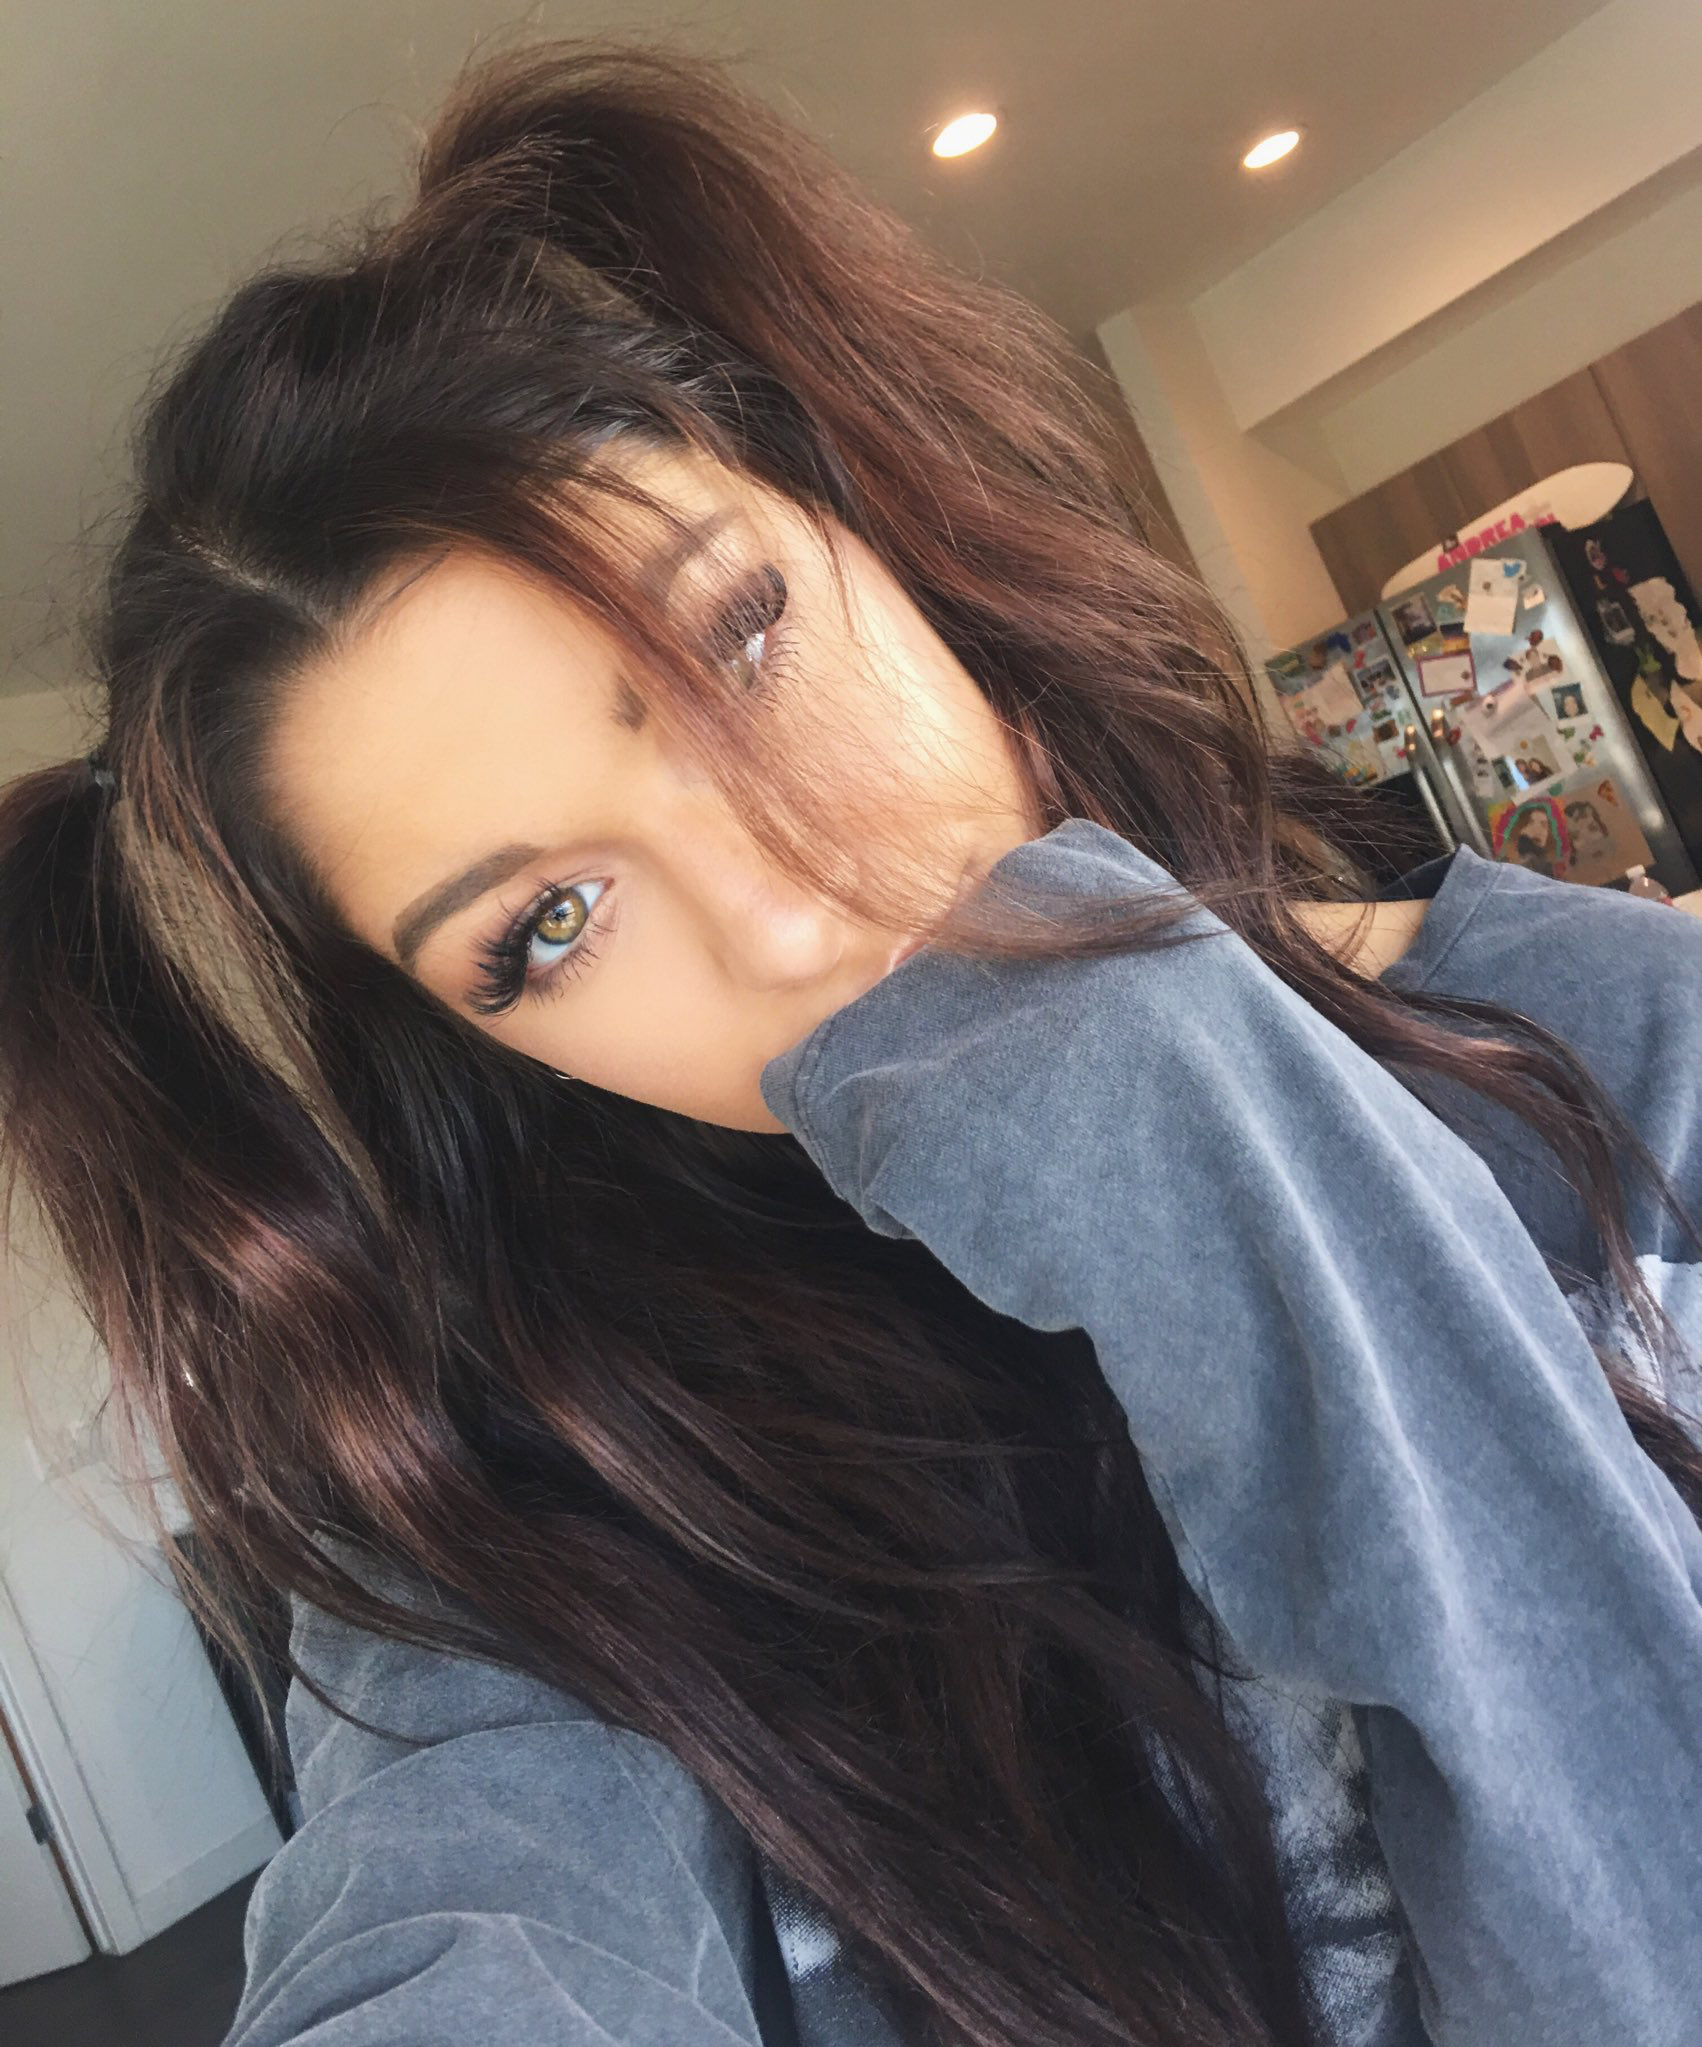 Pin By Teardrop On Queen Andrea Andrea Russett Edgy Hair Hair Styles